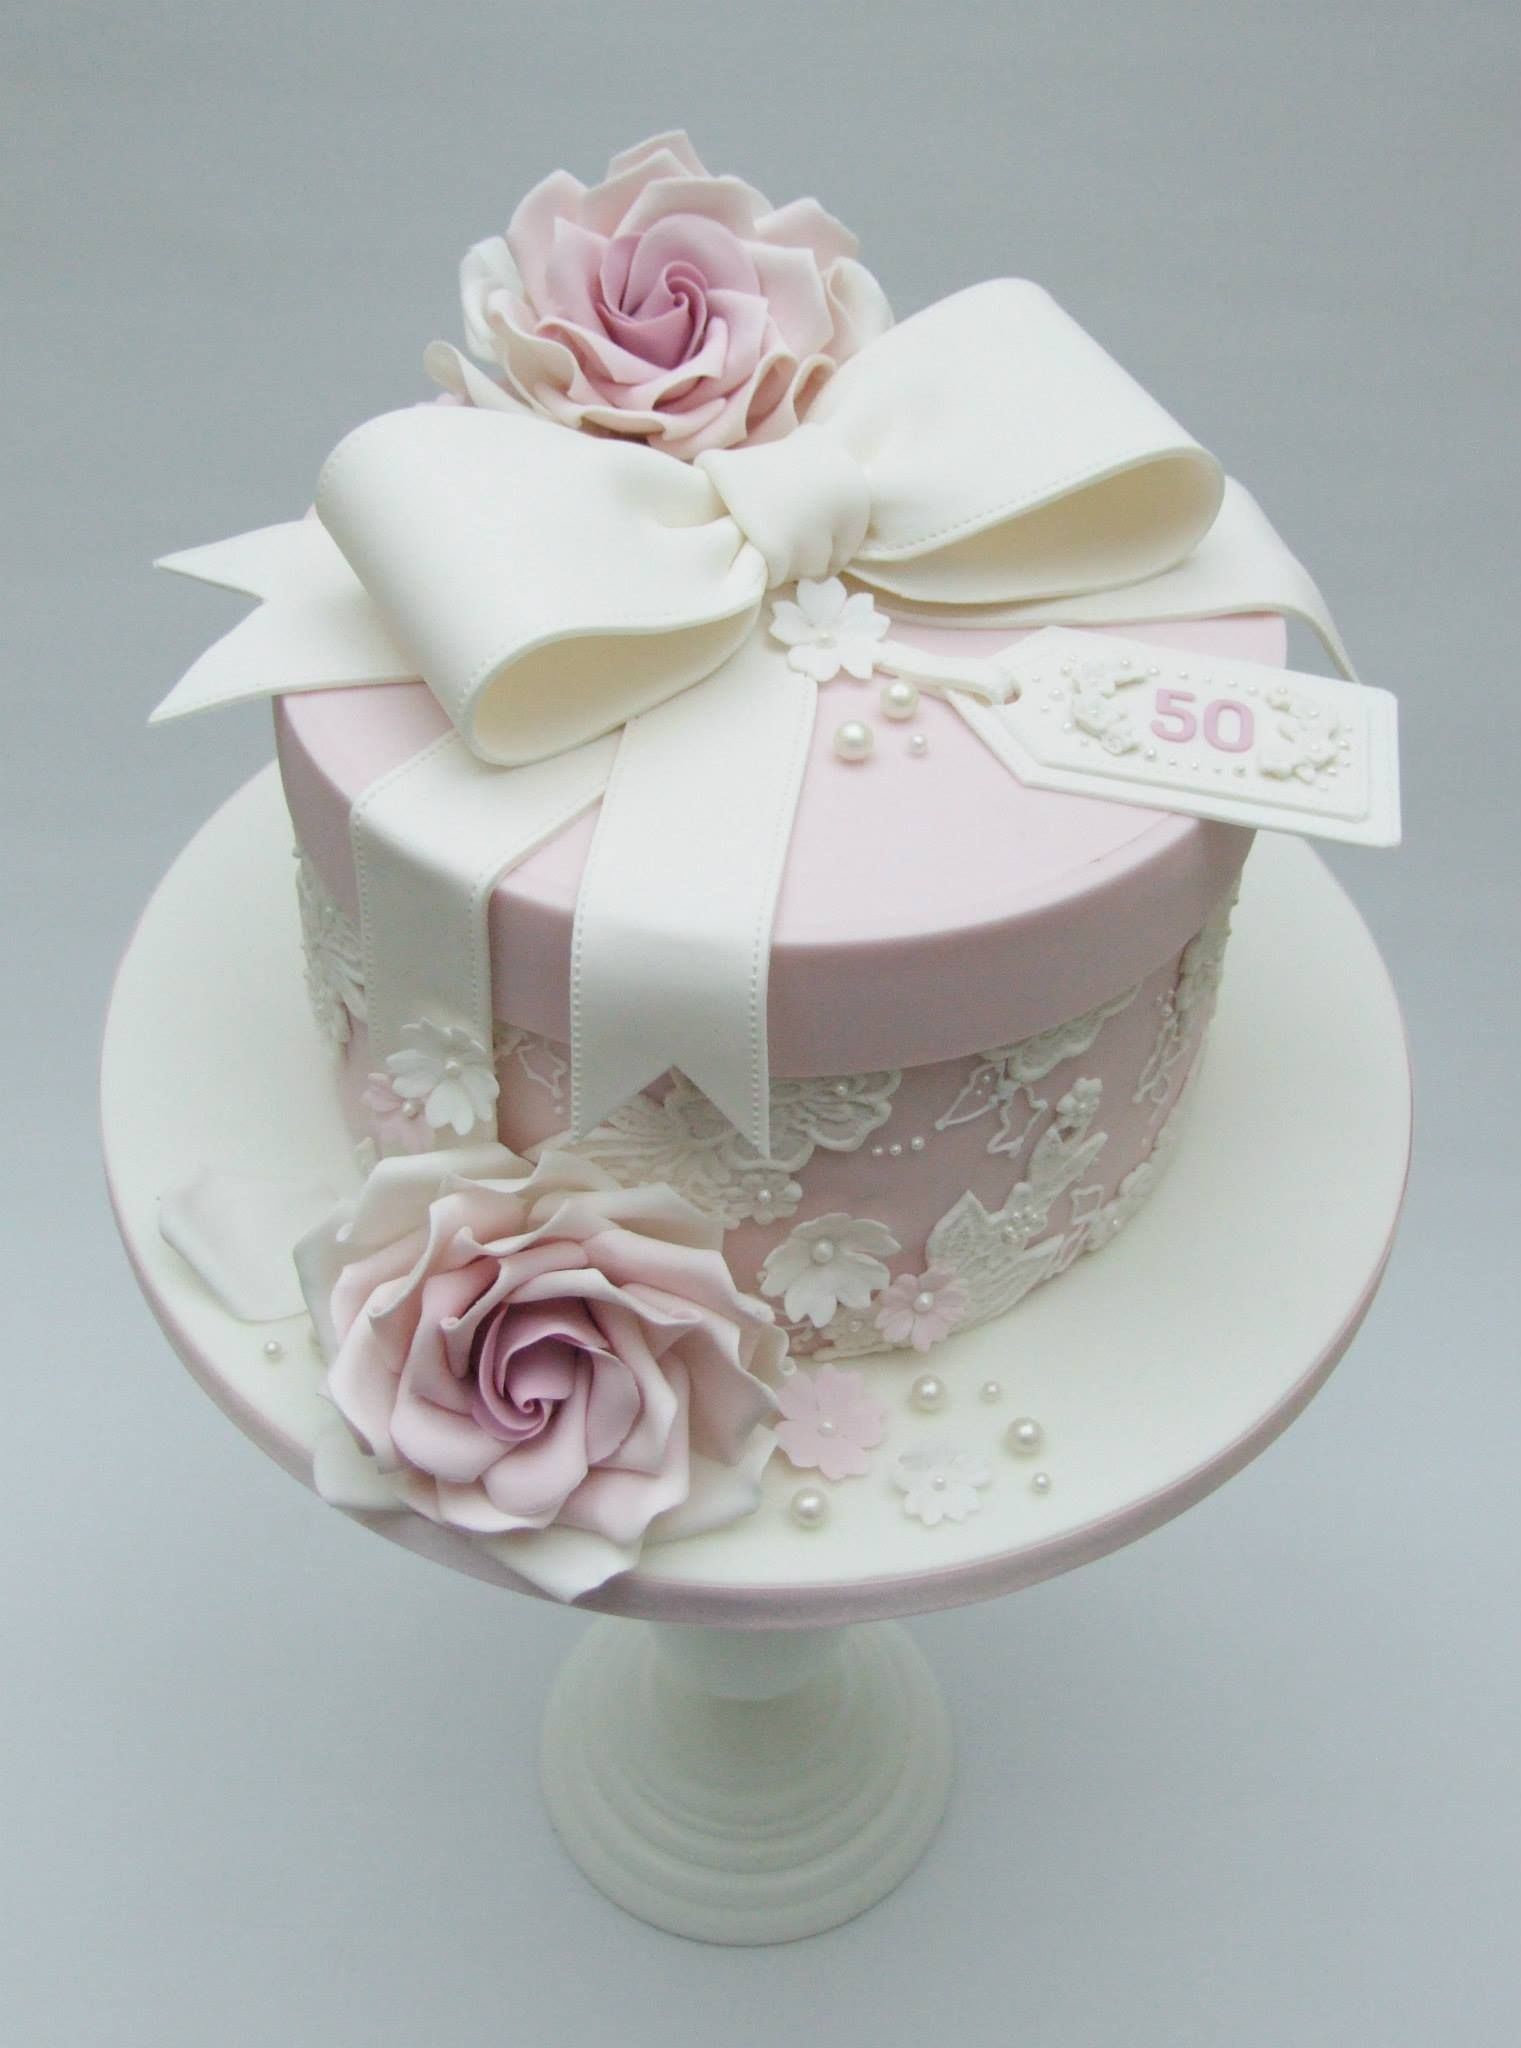 Astounding Emma Jayne Cake Design Floral Cakes With Images Elegant Personalised Birthday Cards Cominlily Jamesorg